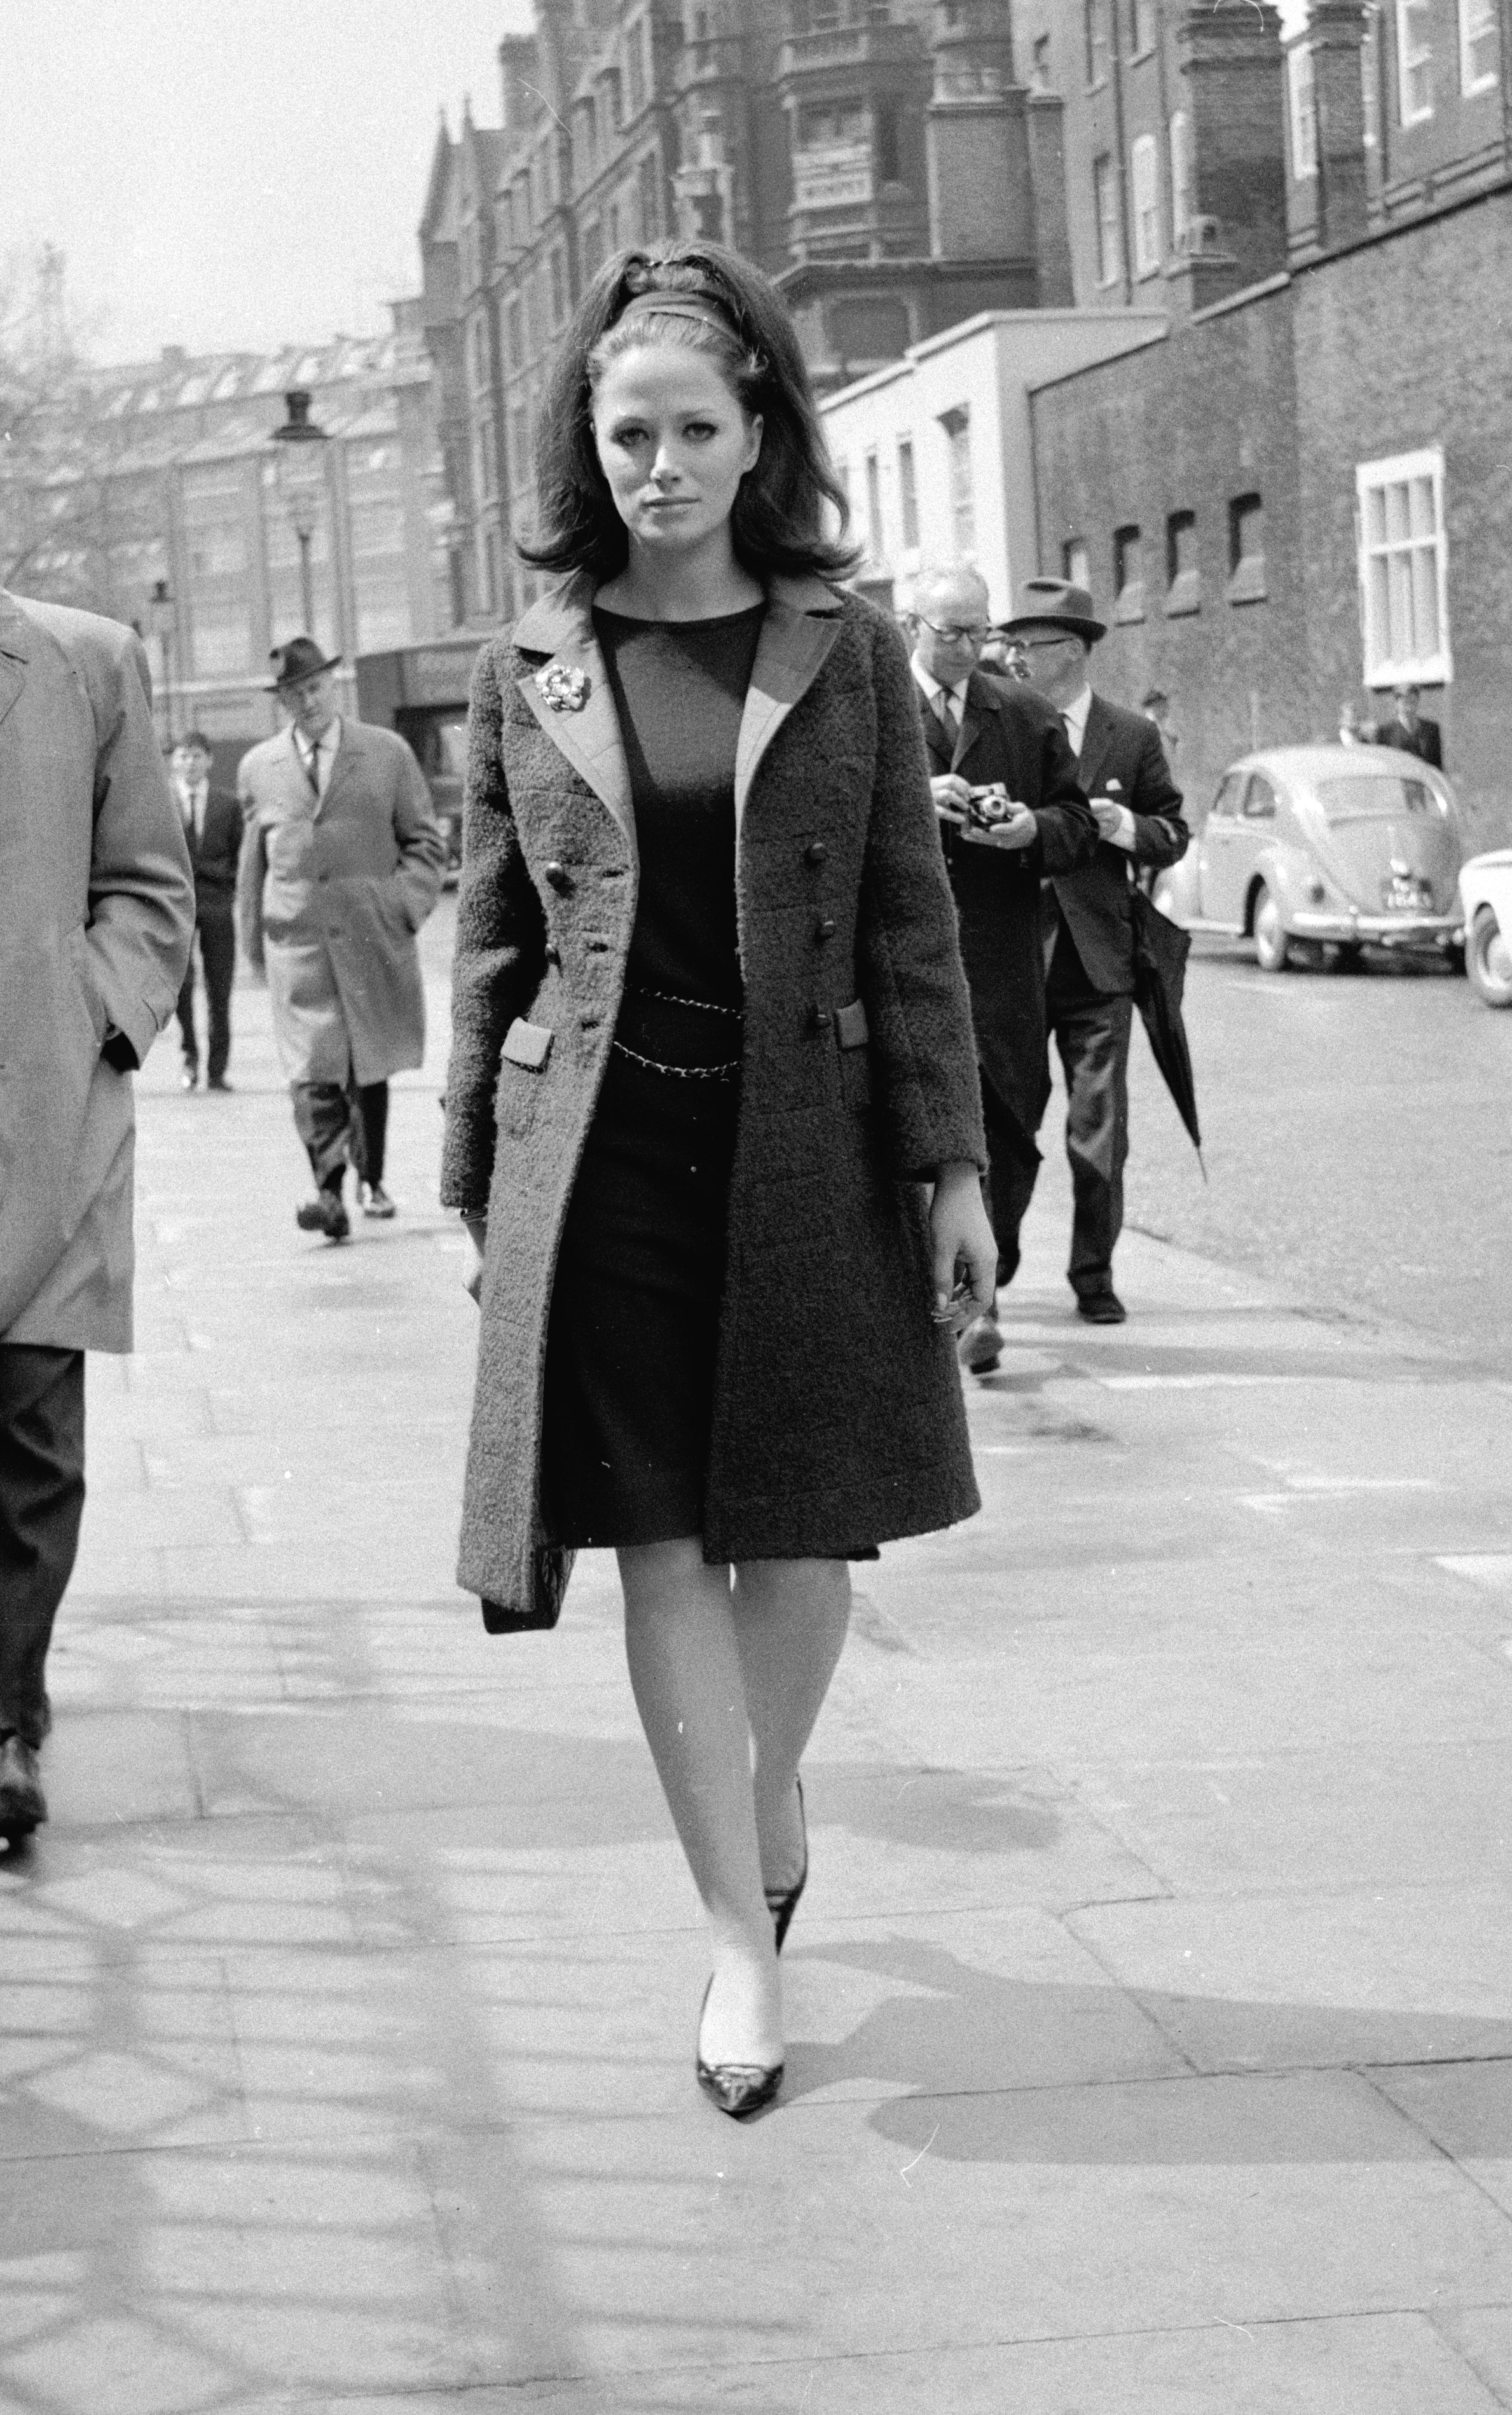 5th May 1965:  Newly divorced writer Jackie Collins (Mrs Wallace Austin) in the street after leaving the divorce courts.  (Photo by Harold Clements/Express/Getty Images)